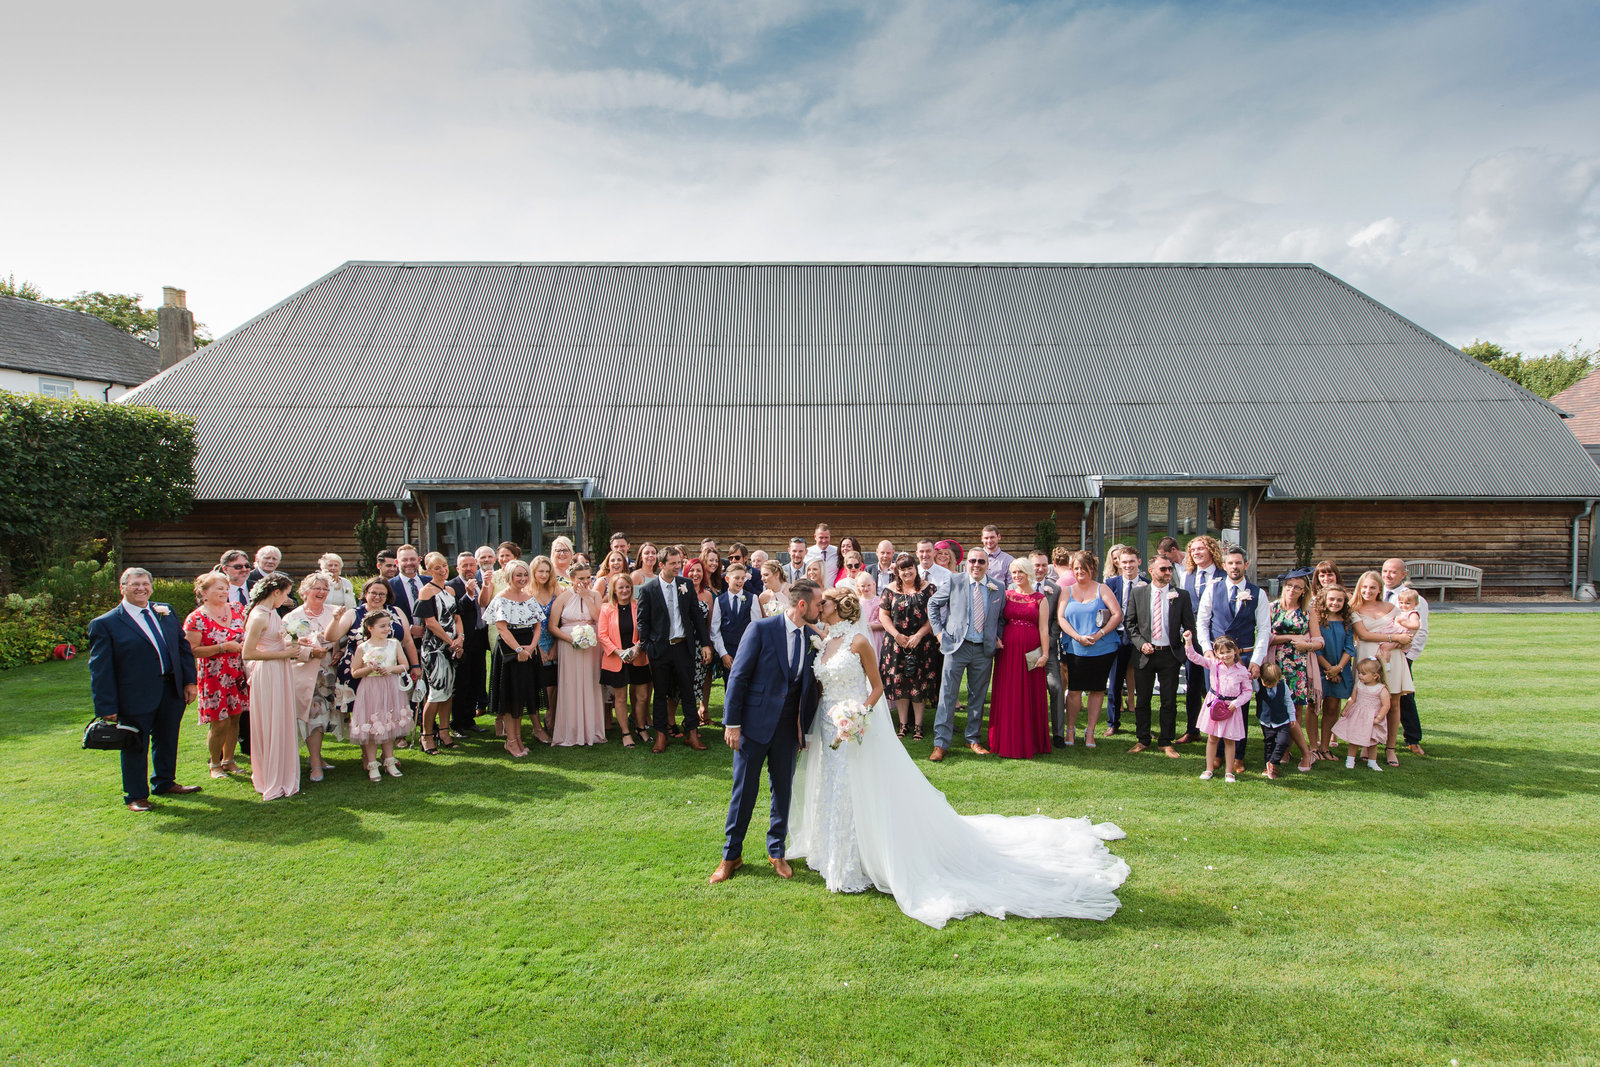 adorlee-0275-southend-barns-wedding-photographer-chichester-west-sussex